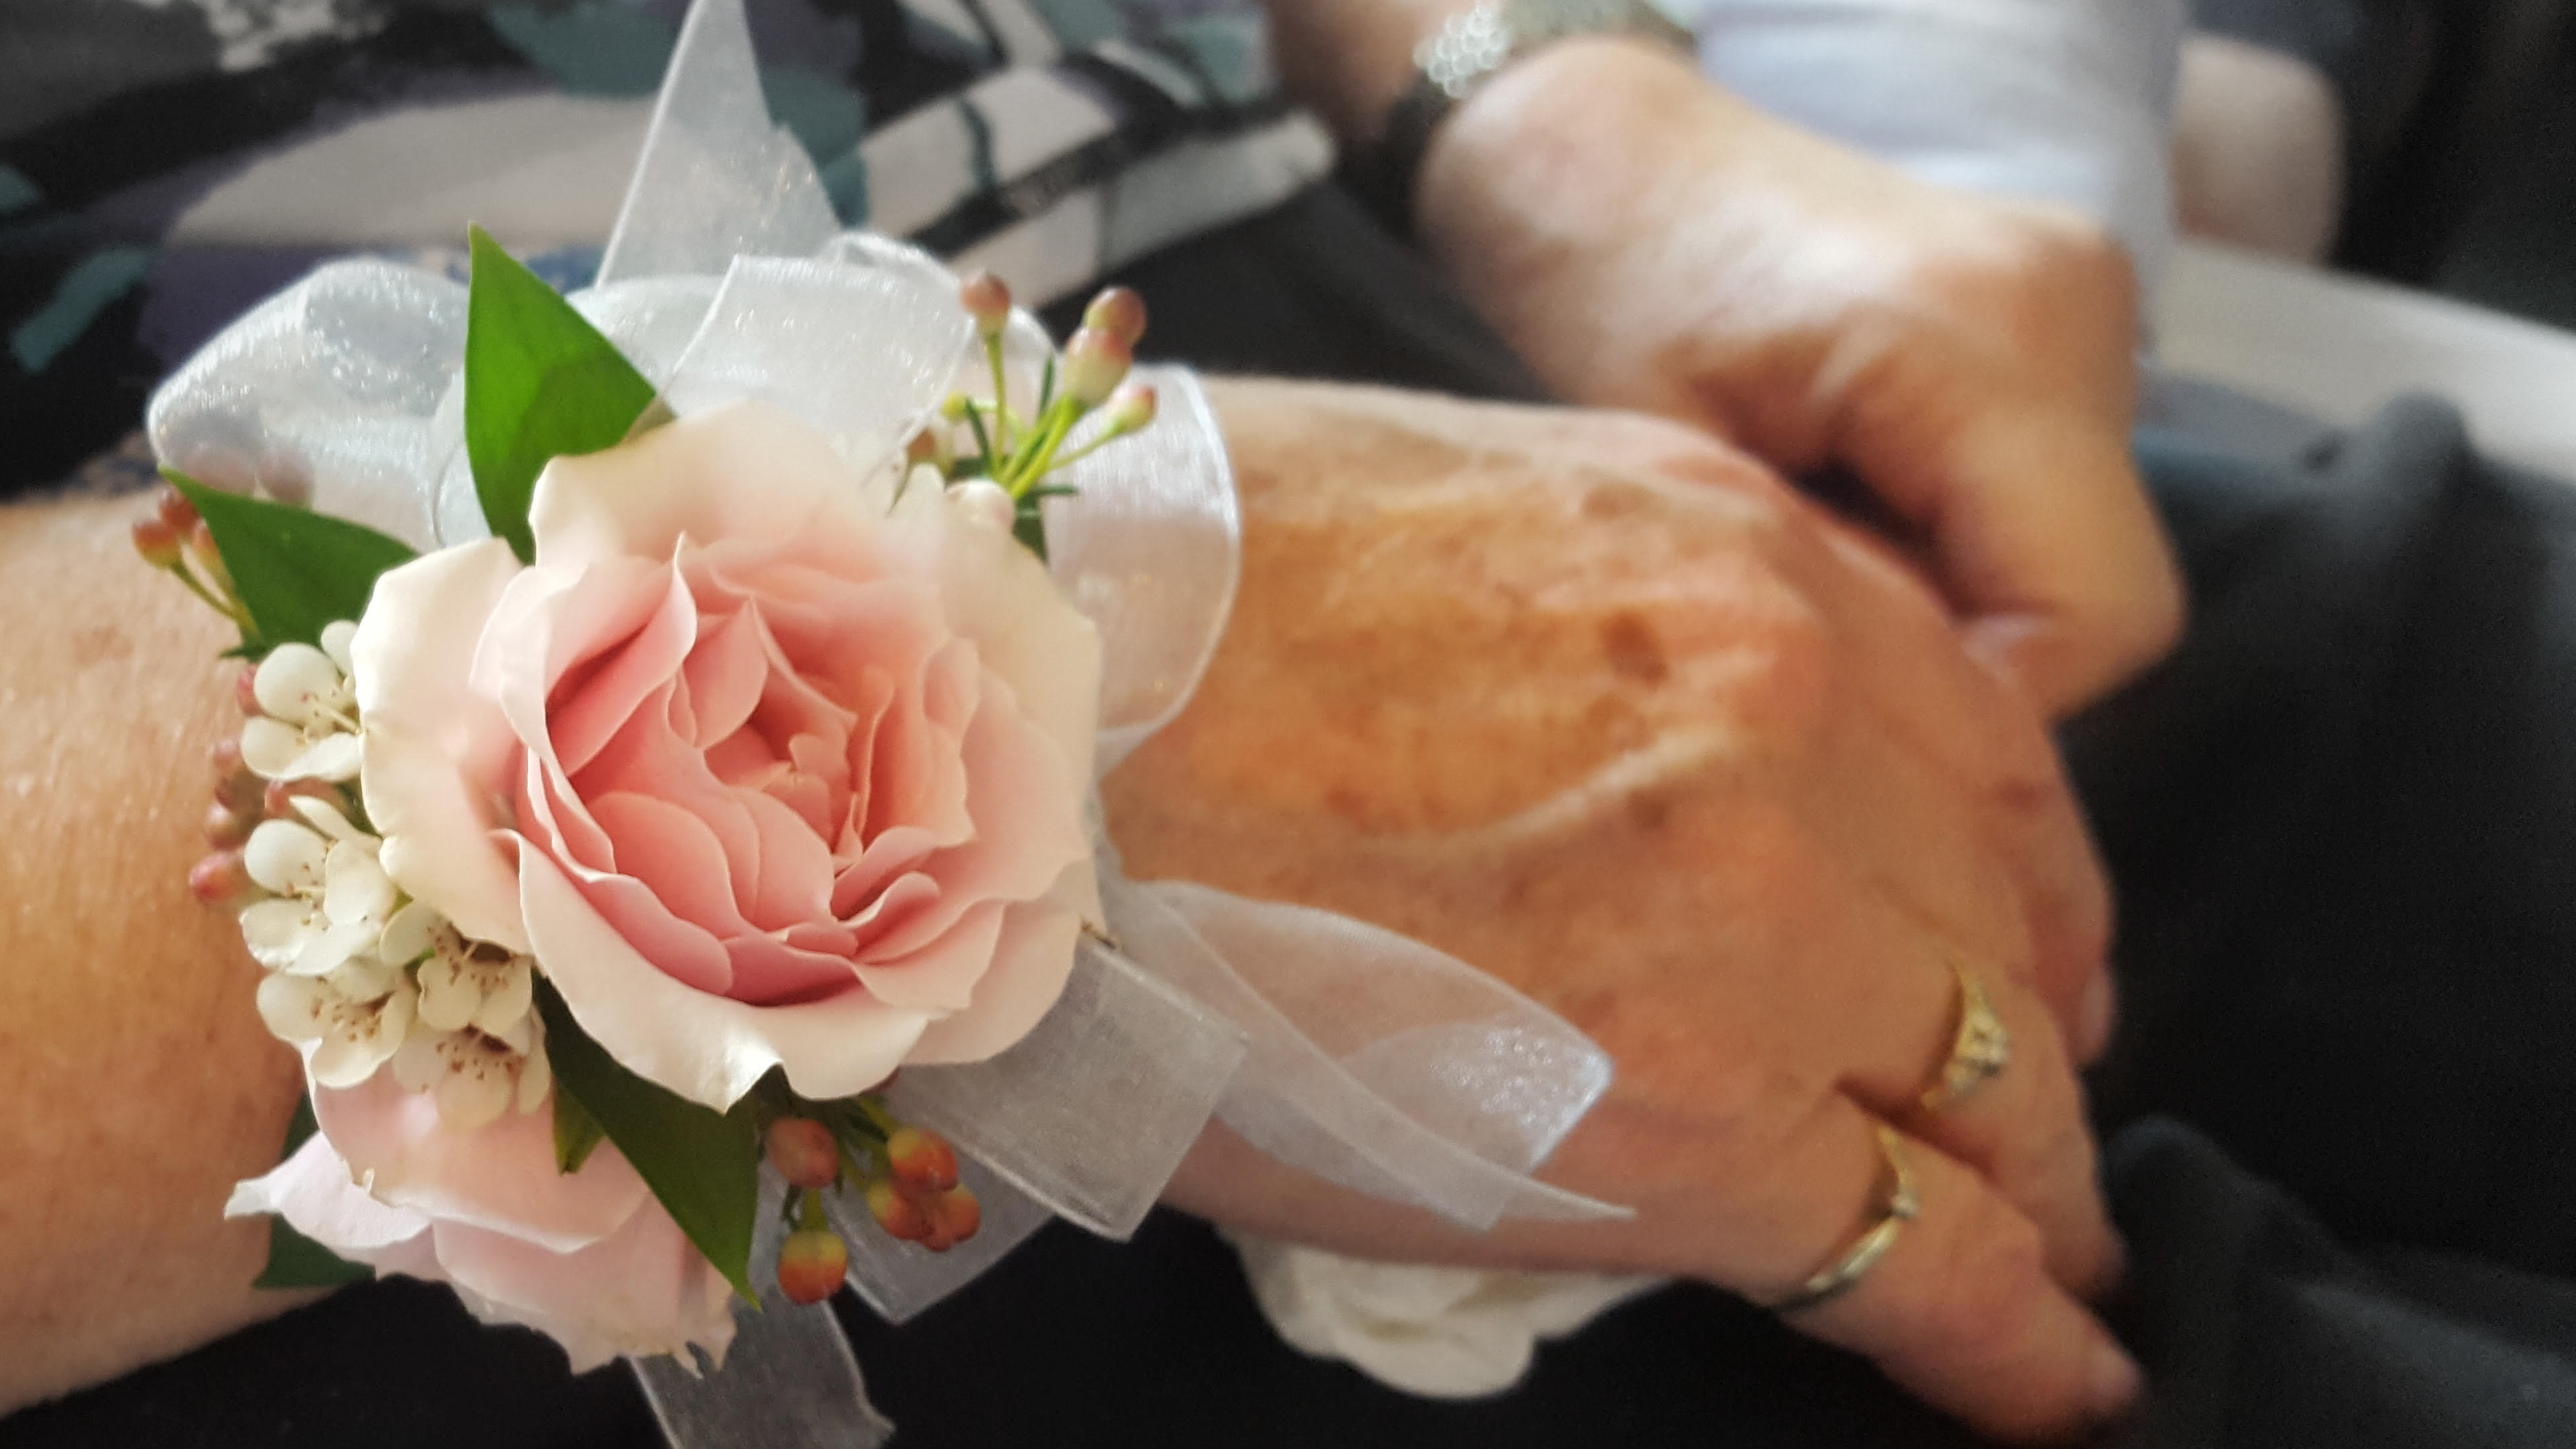 On the day of her death, Nowicki wore a corsage two of her granddaughters gave her. (Nowicki family)